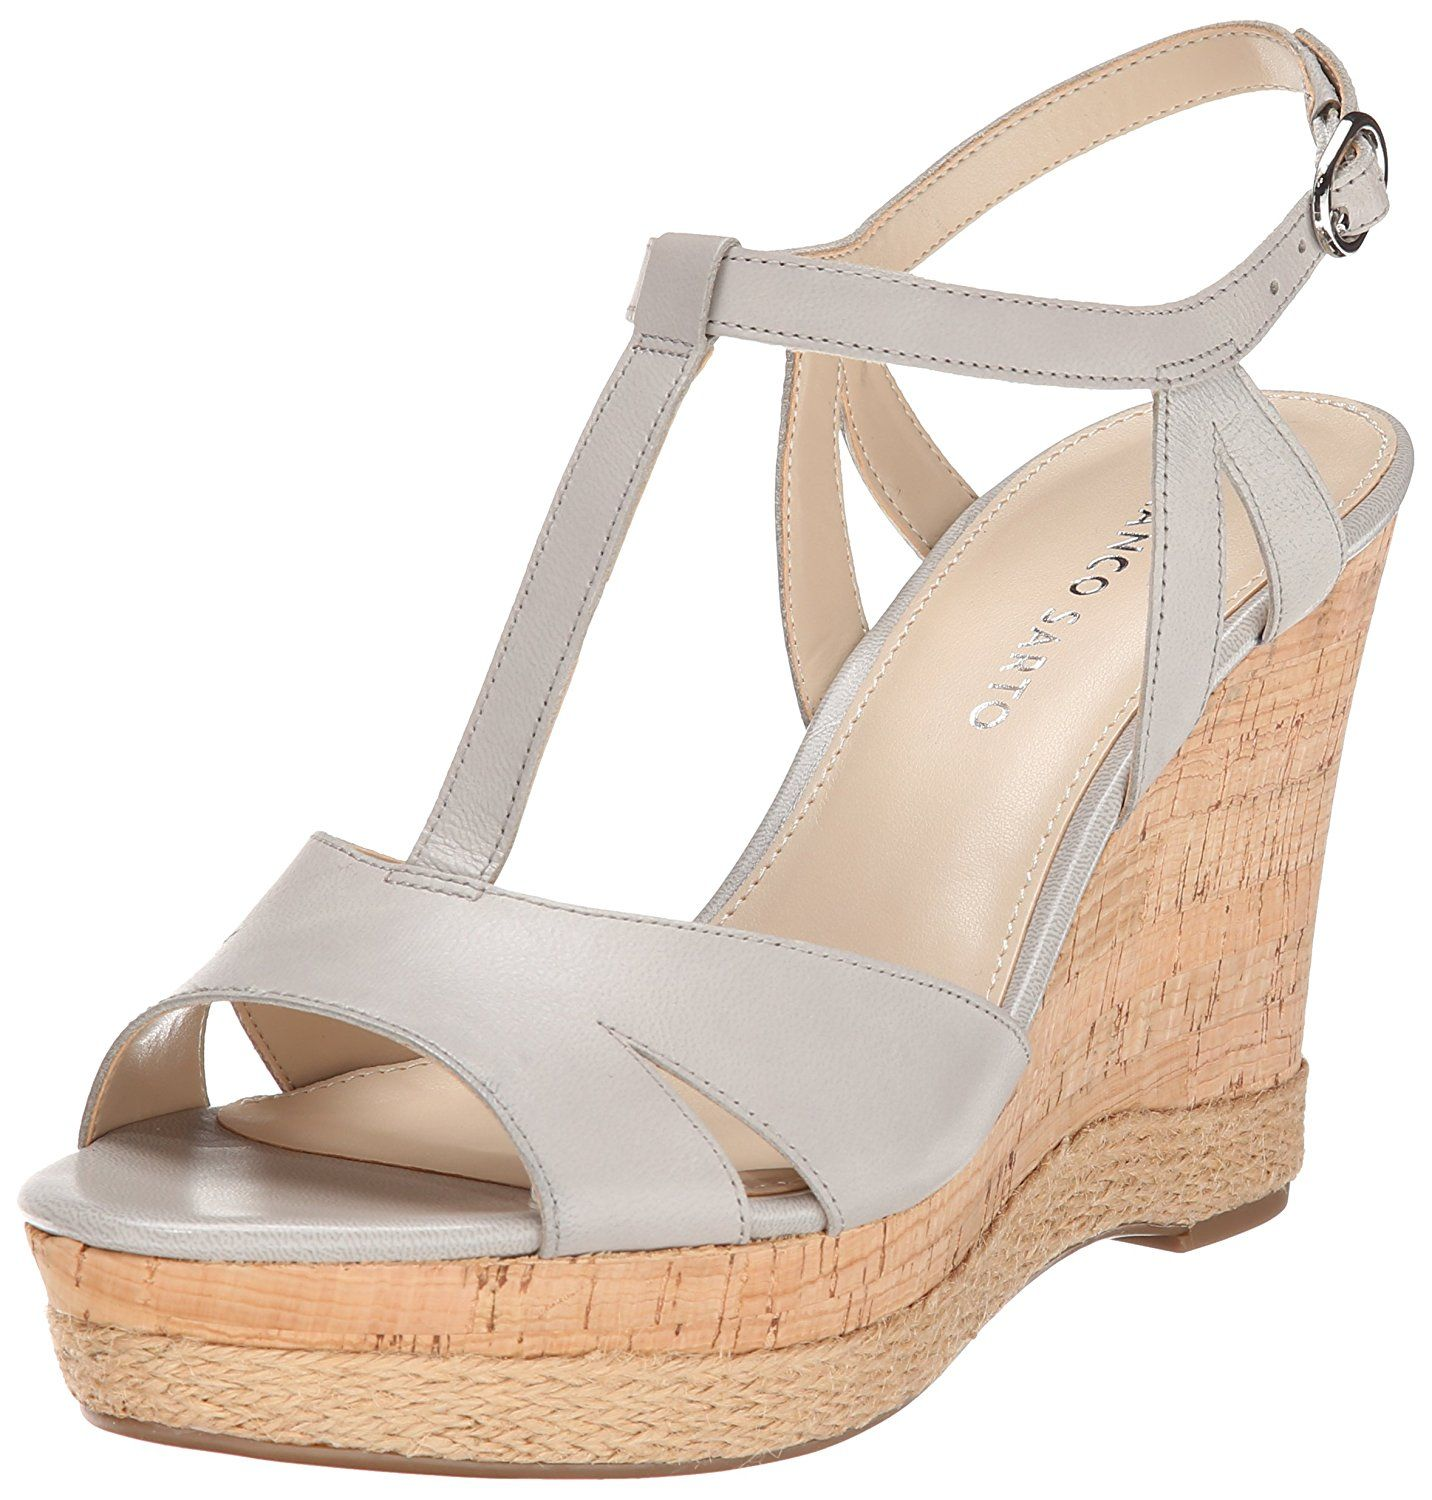 7585a3c9b3c Franco Sarto Women s Swerve Espadrille Sandal    New and awesome product  awaits you